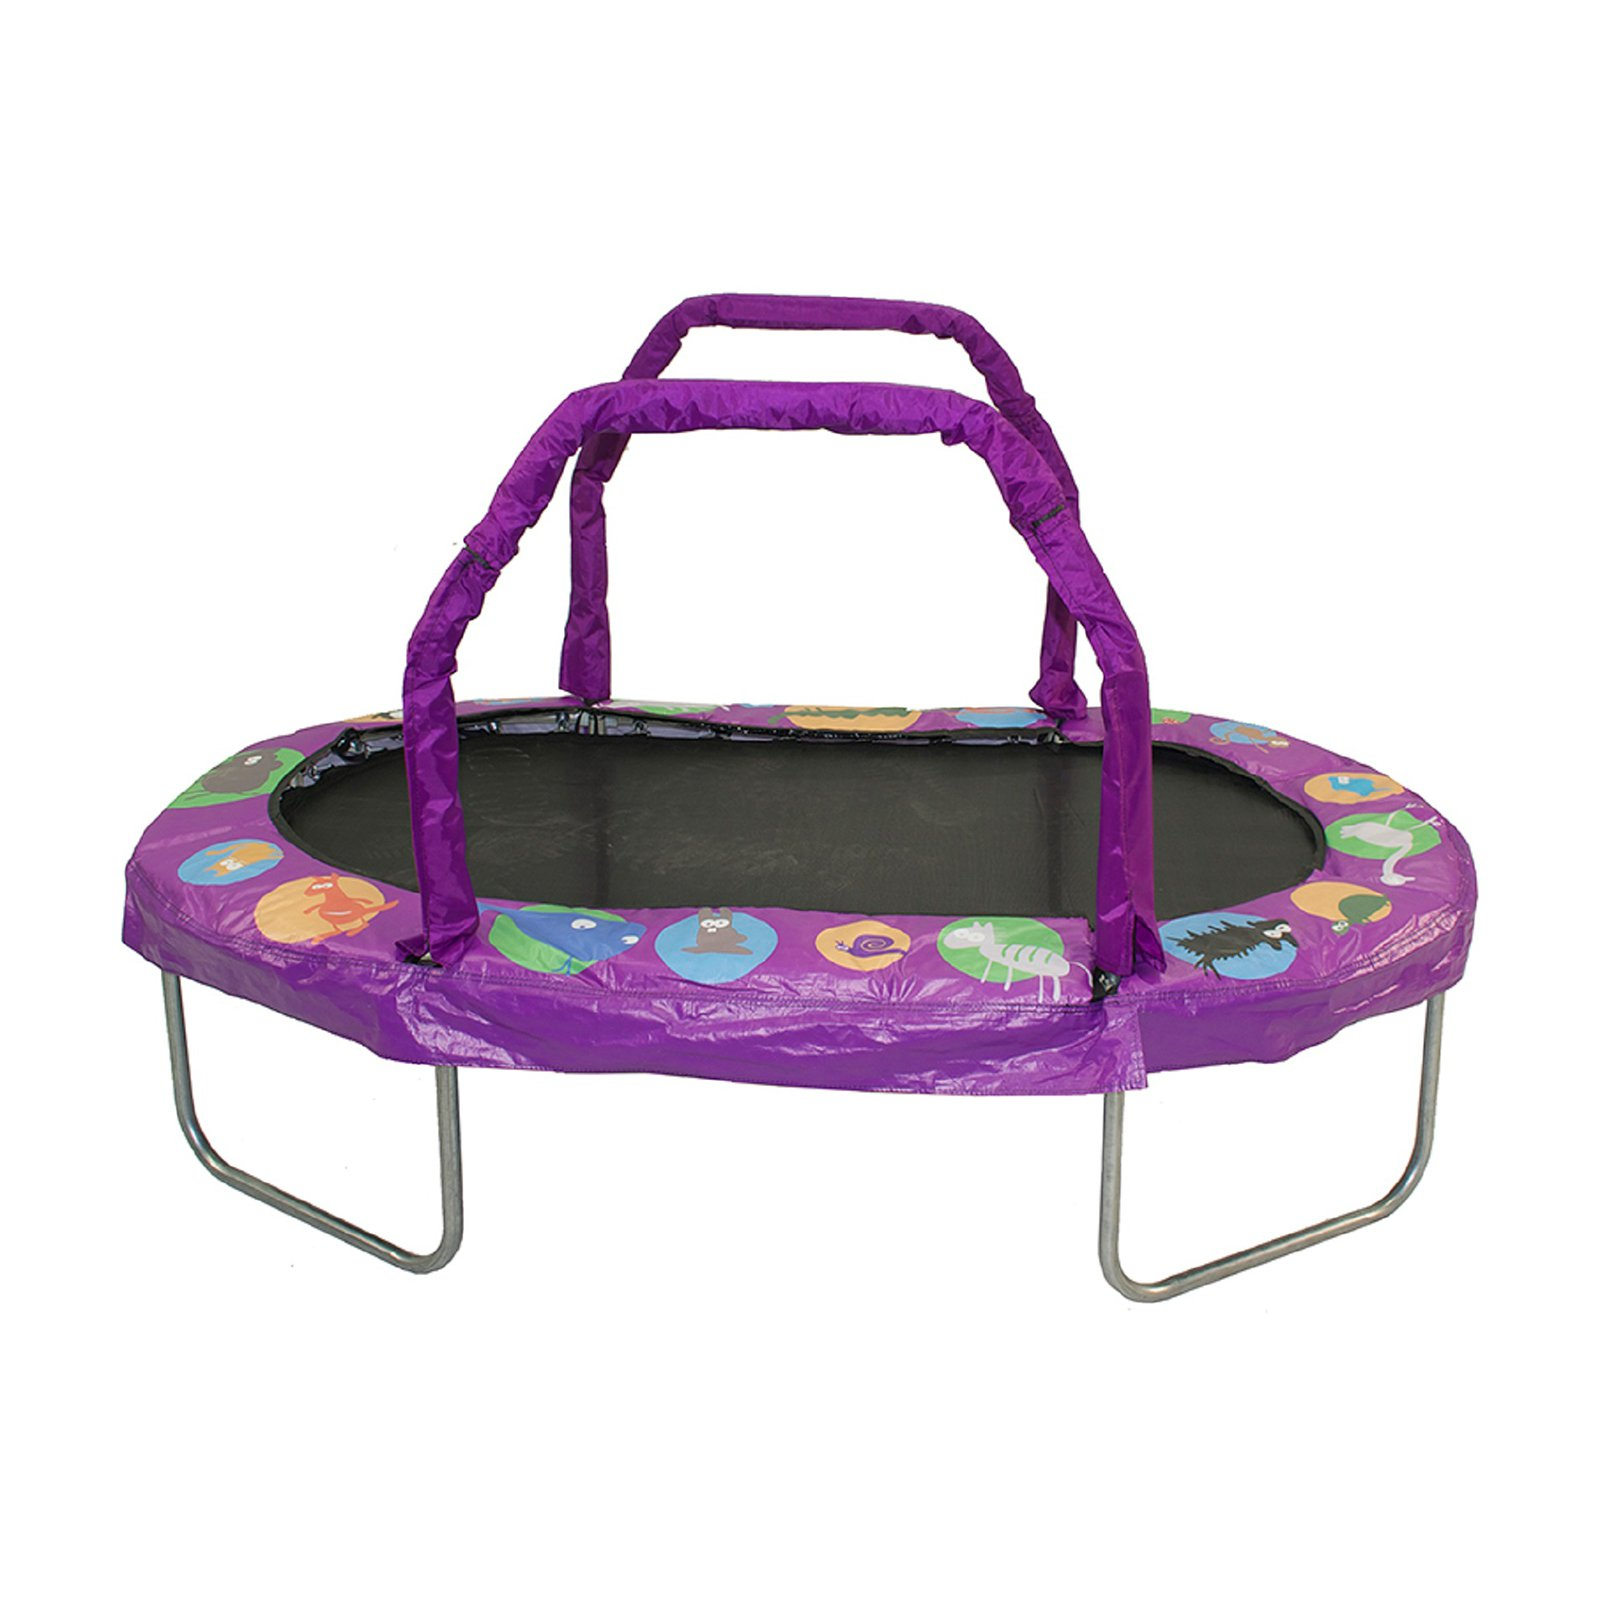 Jumpking Mini Oval 38 x 66 Inch Trampoline, with Handrail, Green